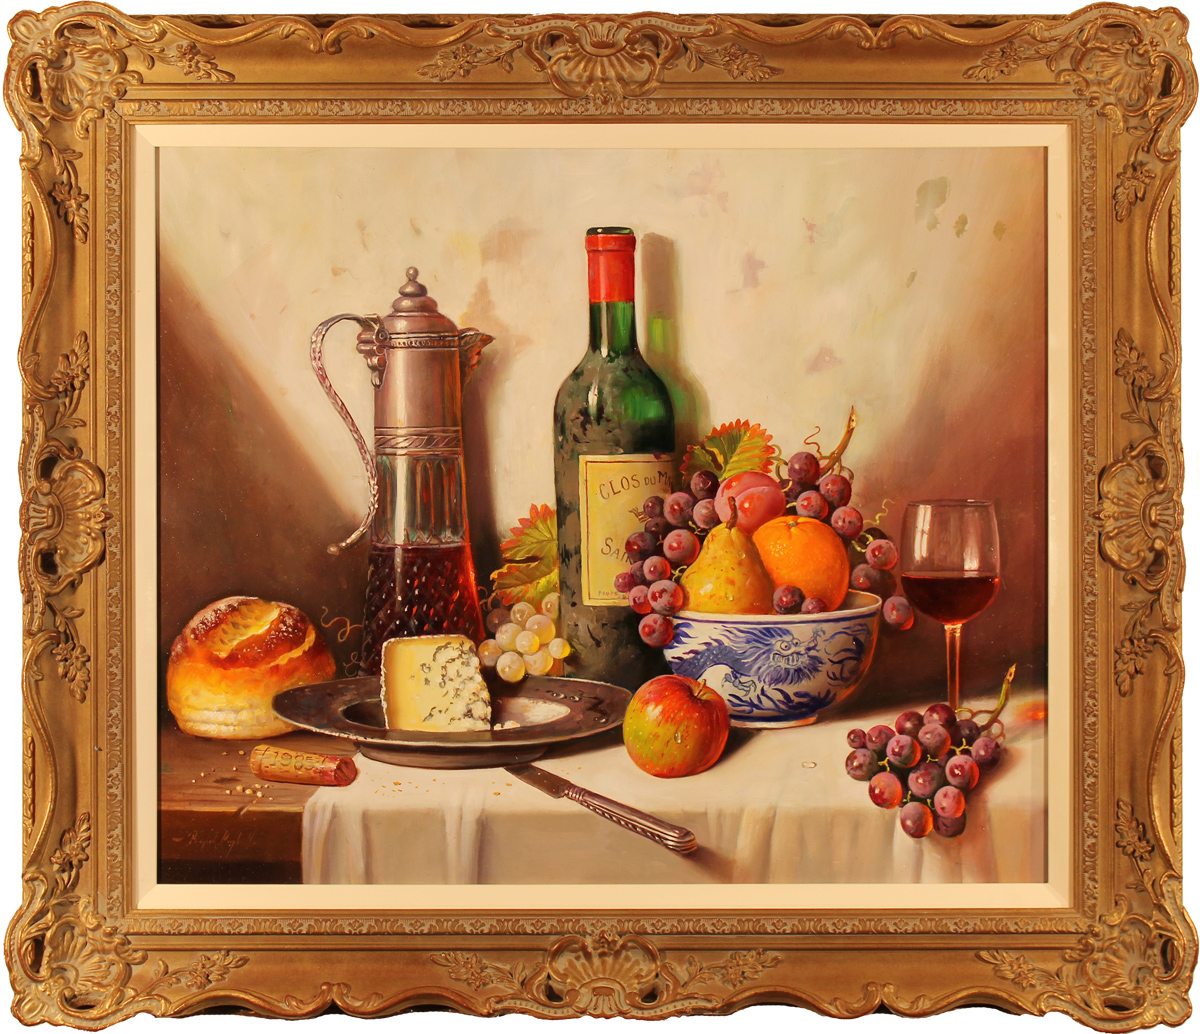 Raymond Campbell, Original oil painting on panel, Clos Du Marquis 1988. Click to enlarge